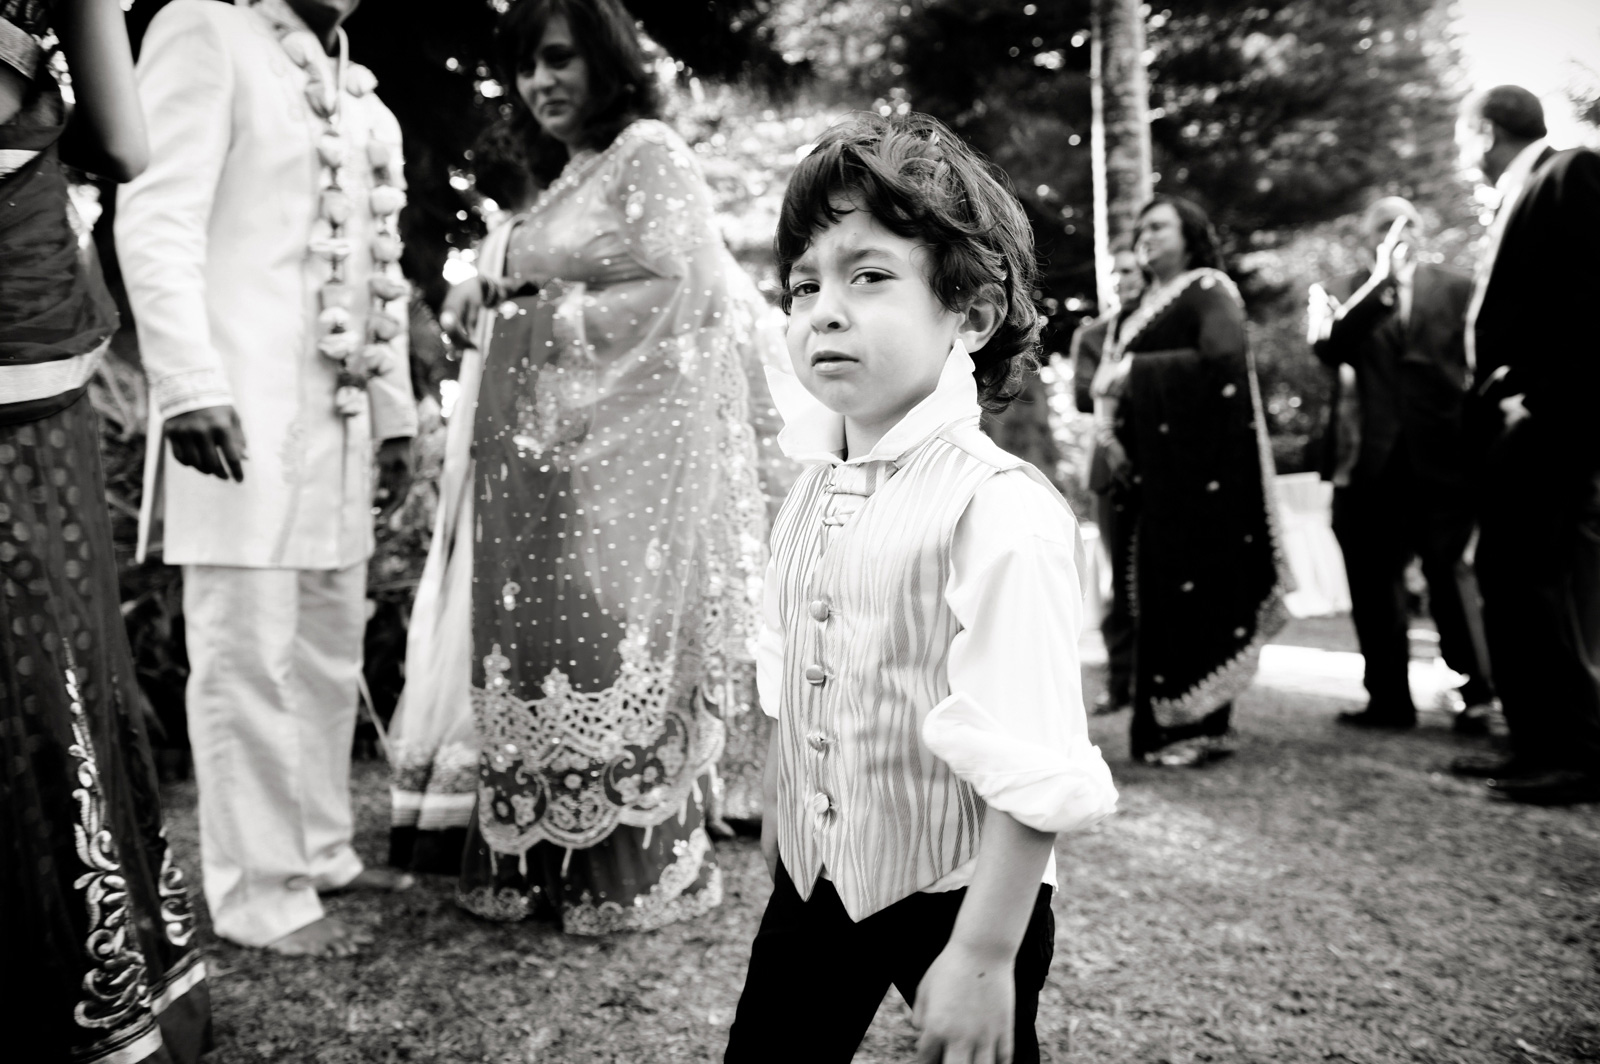 Cute kid at wedding